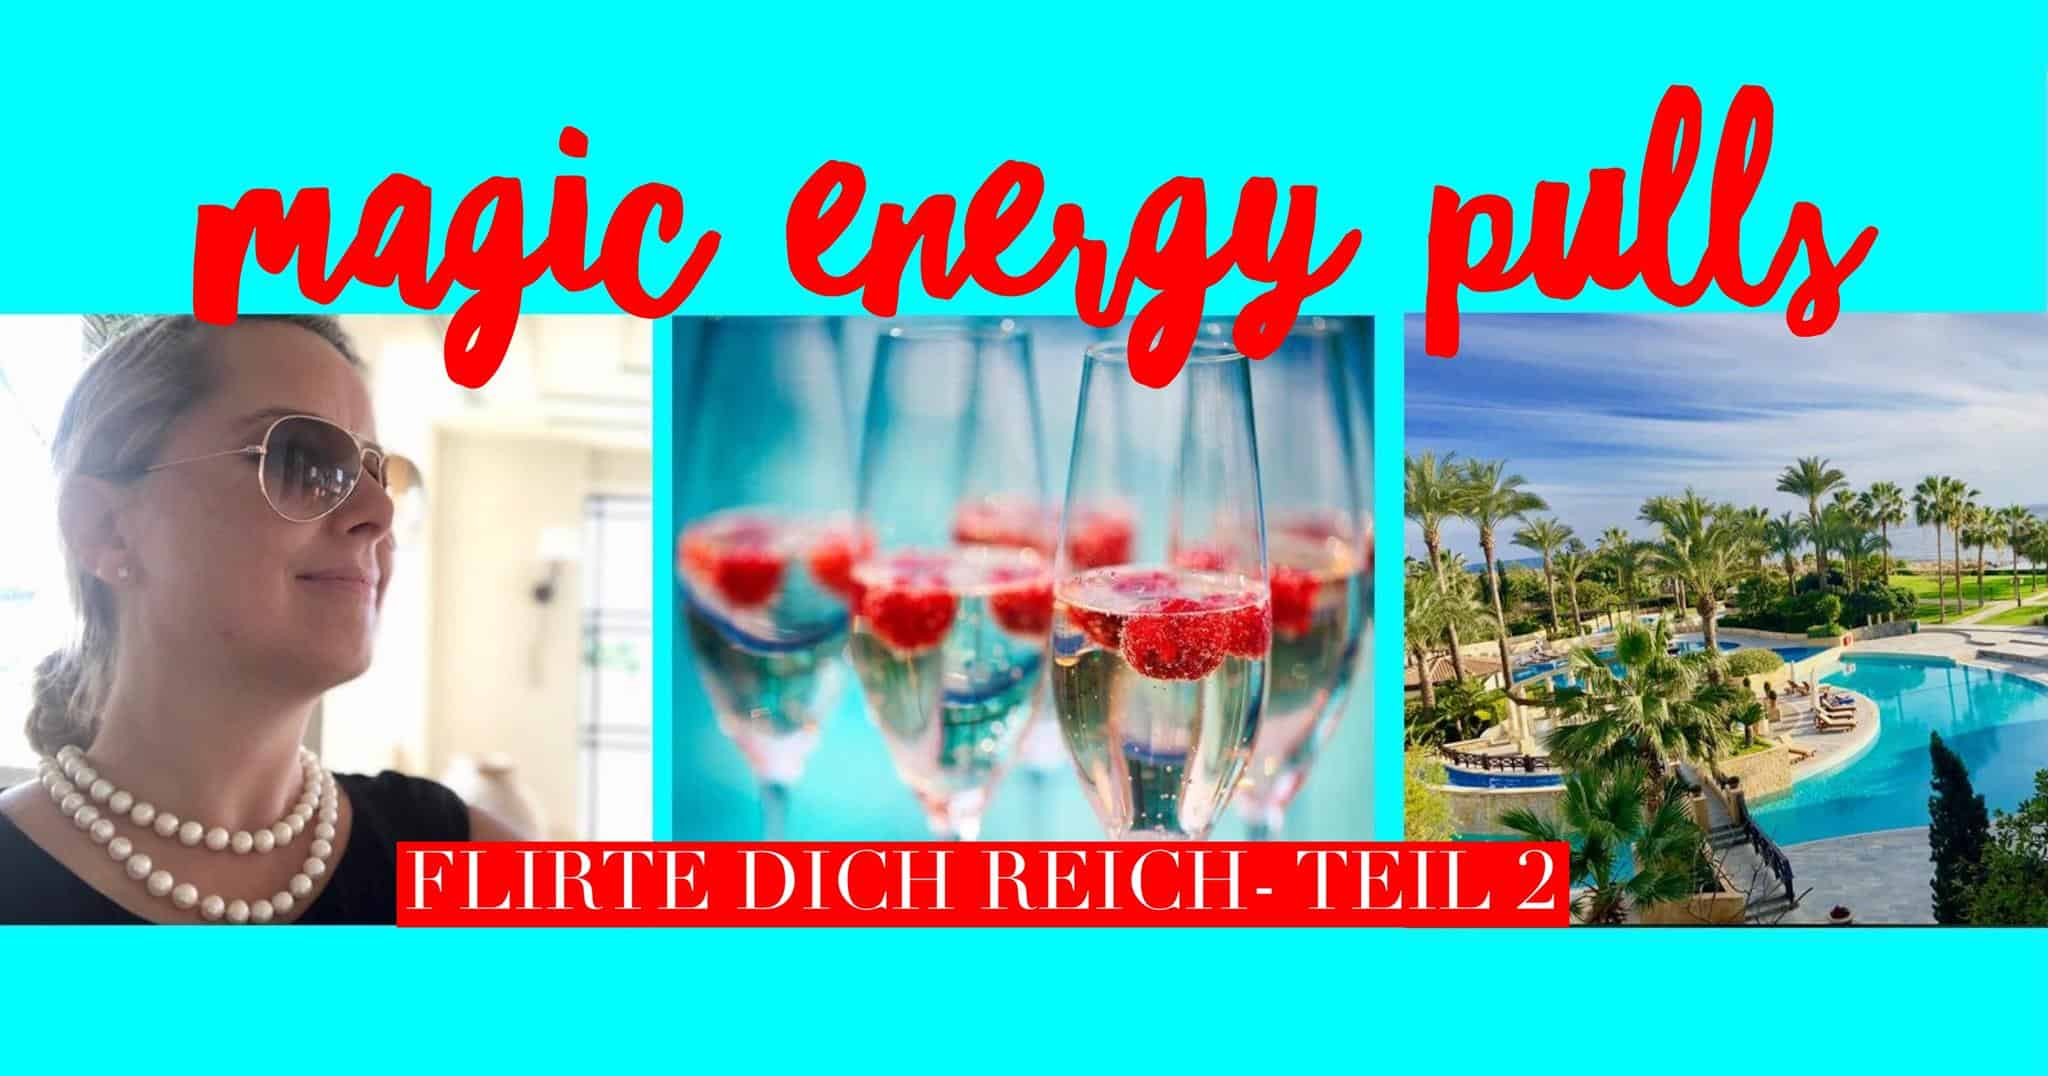 magic energy pulls Flirte dich Reich Teil 2